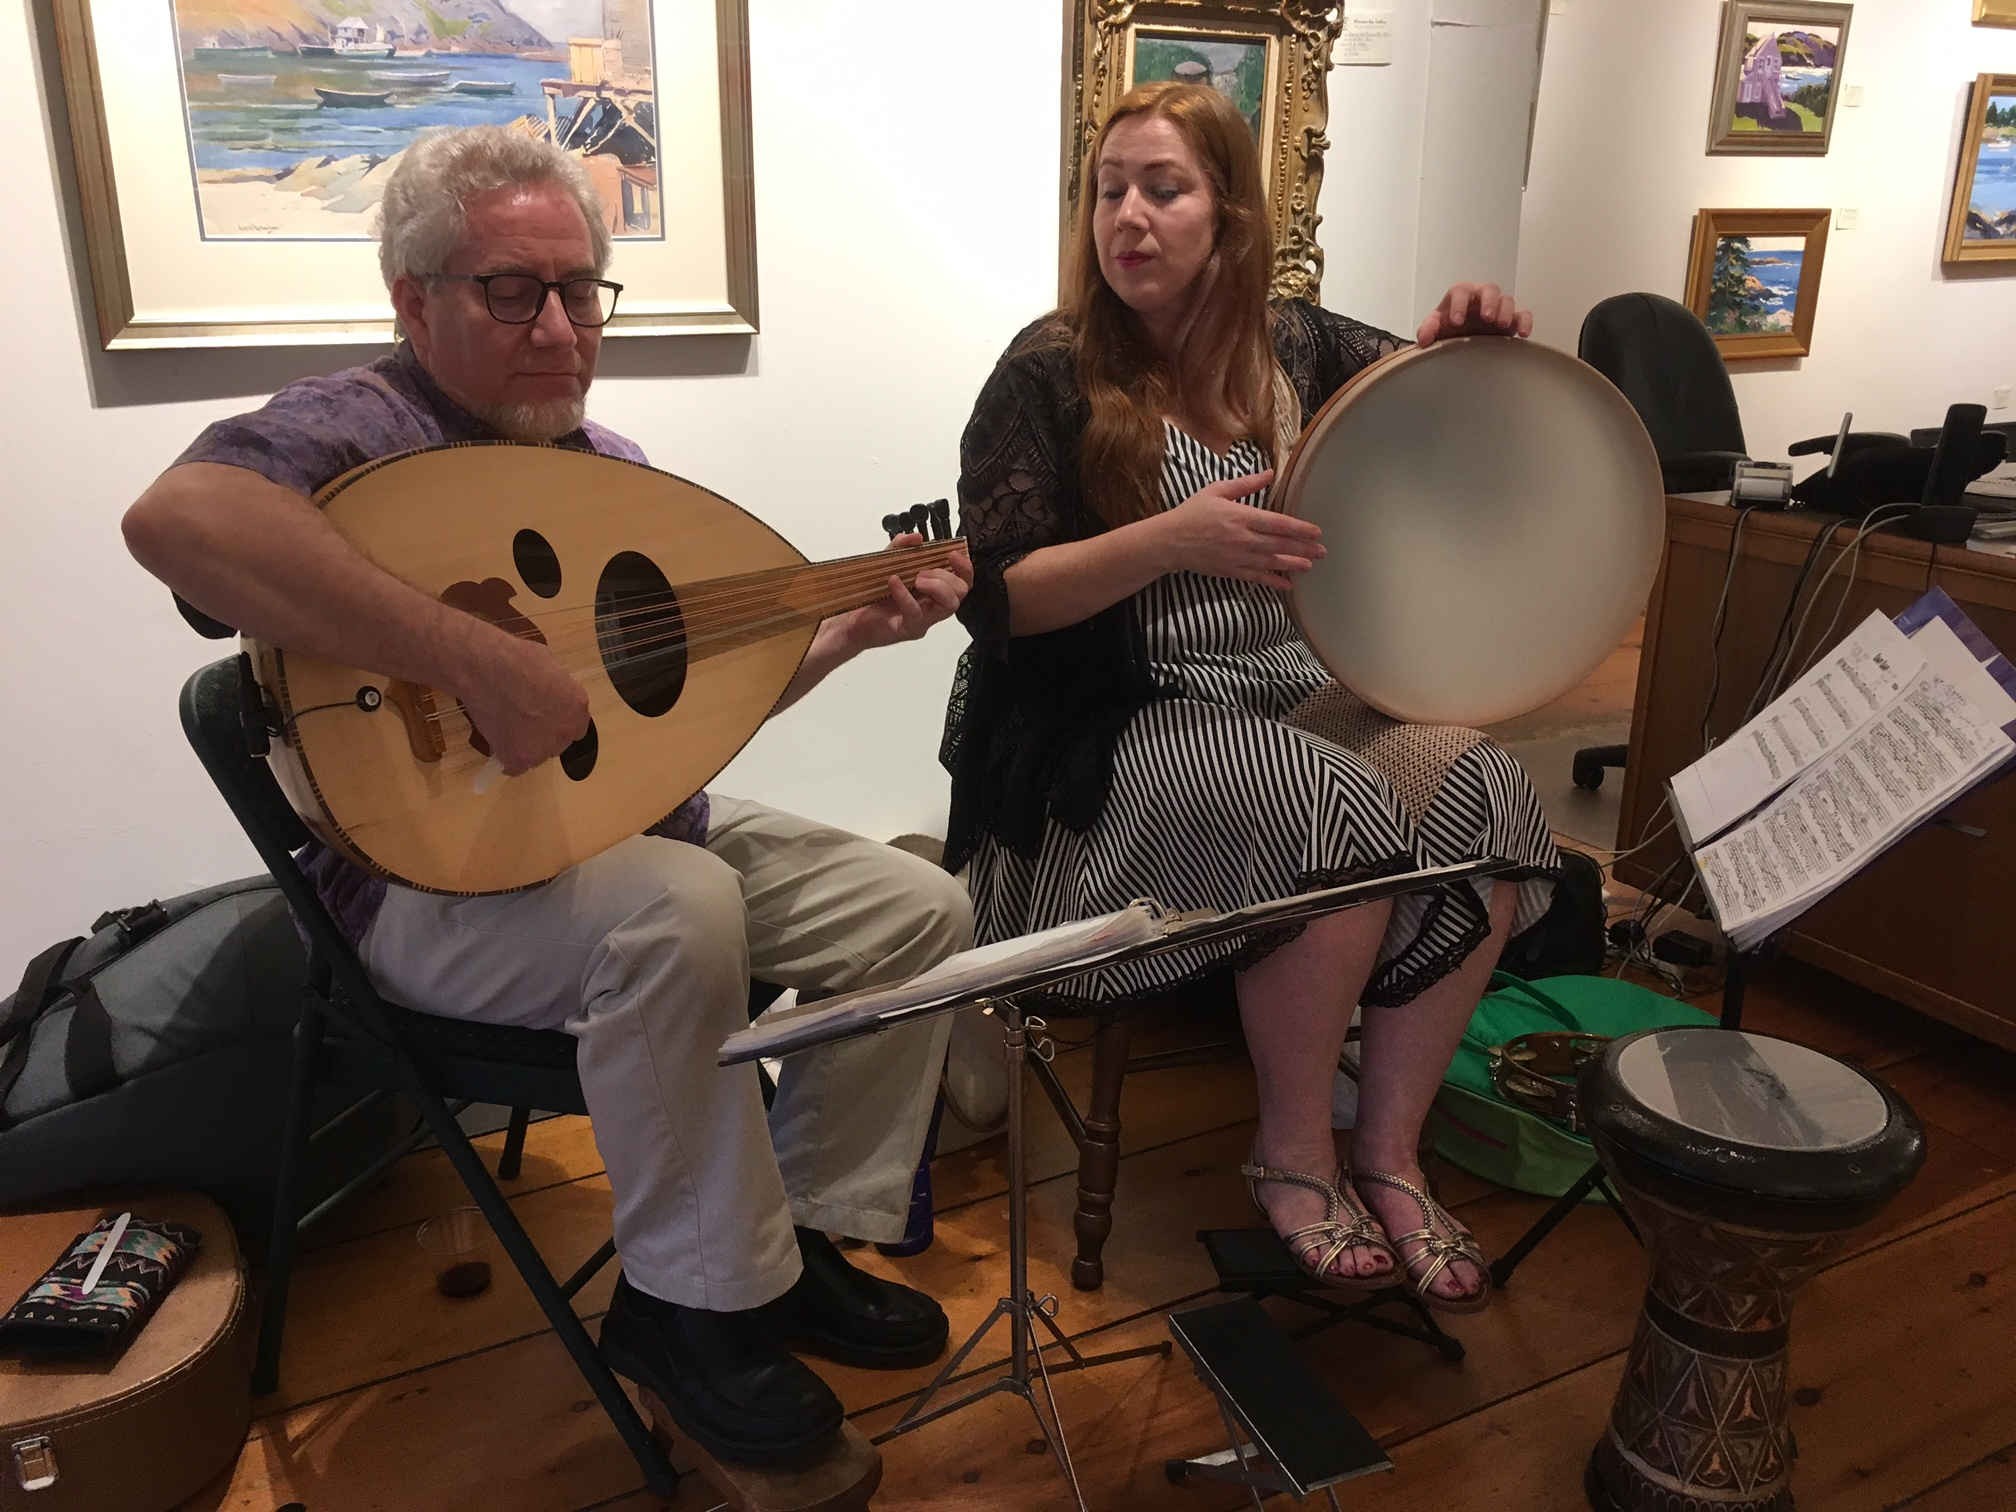 Jonathan Waldo and Dorothy Barker play in Wiscasset Bay Gallery